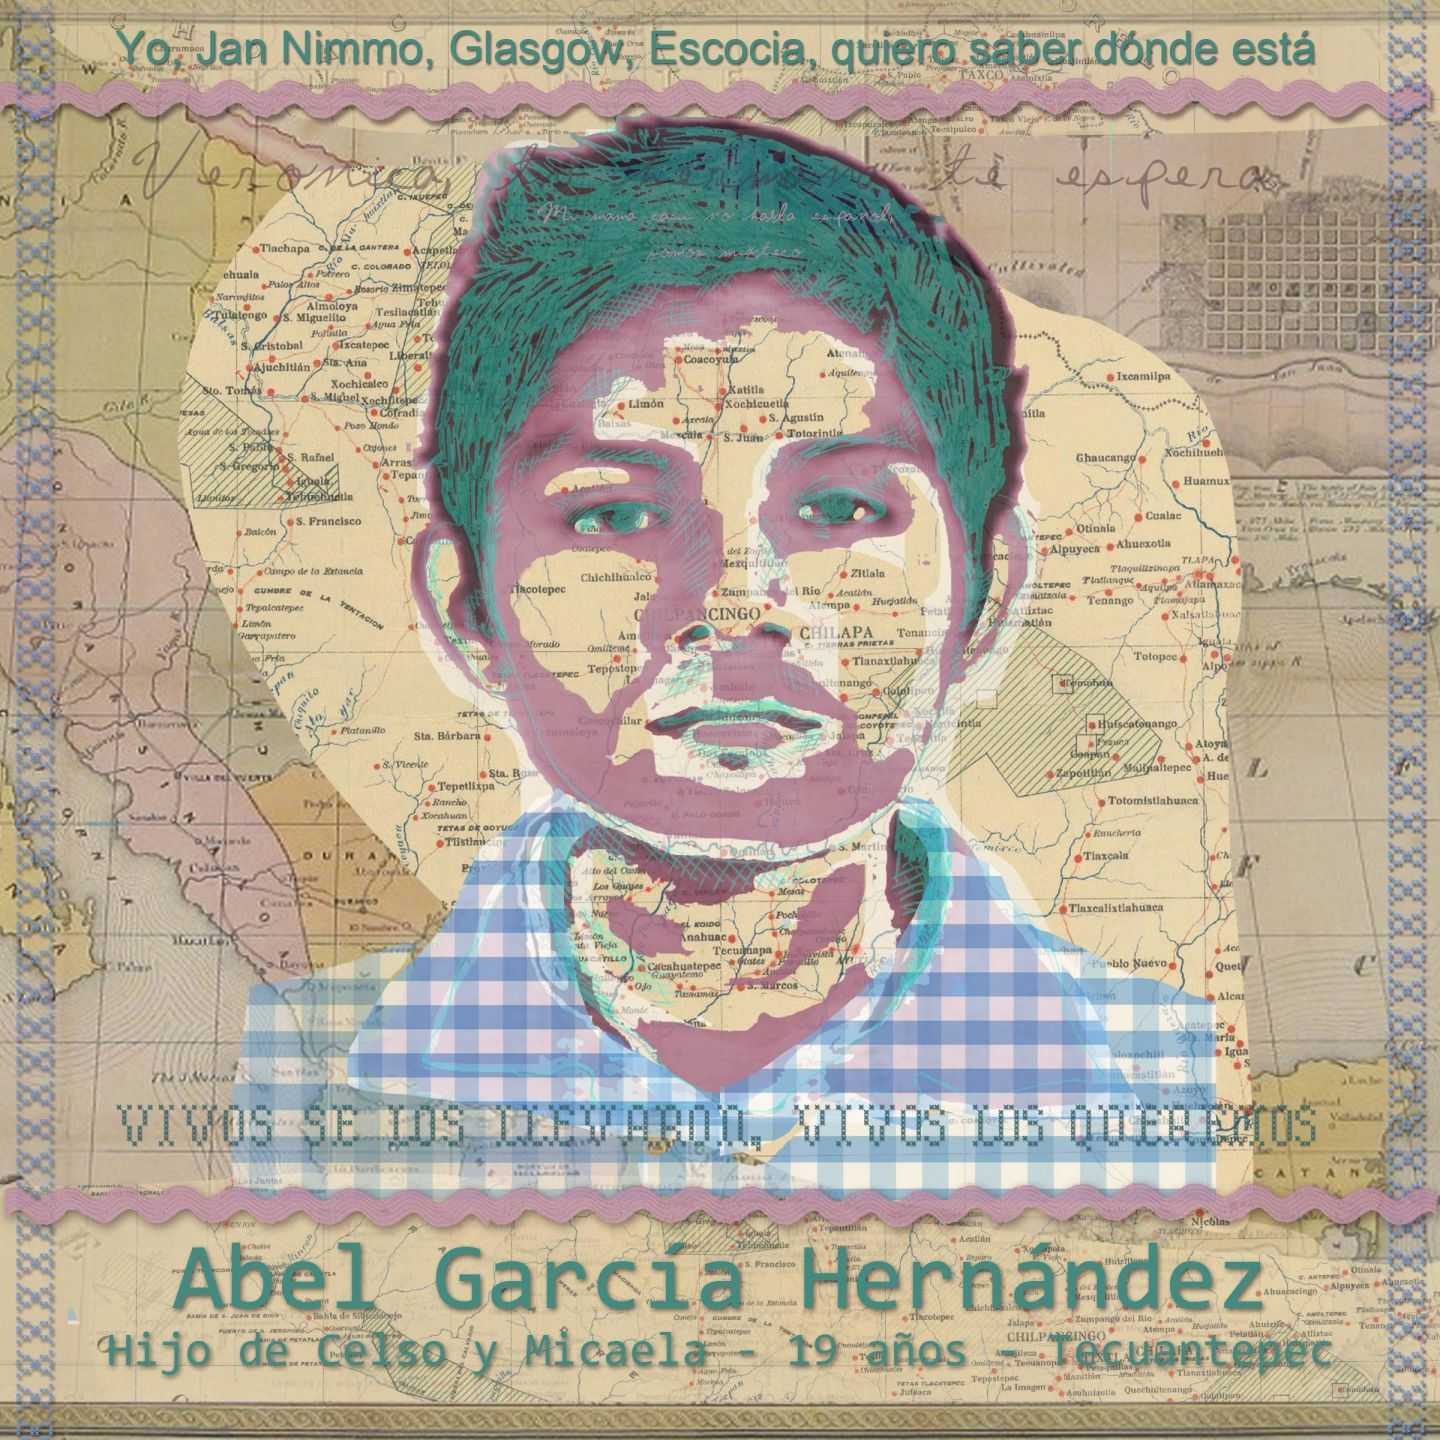 Portrait of Abel Garcia Hernandez by Jan Nimo